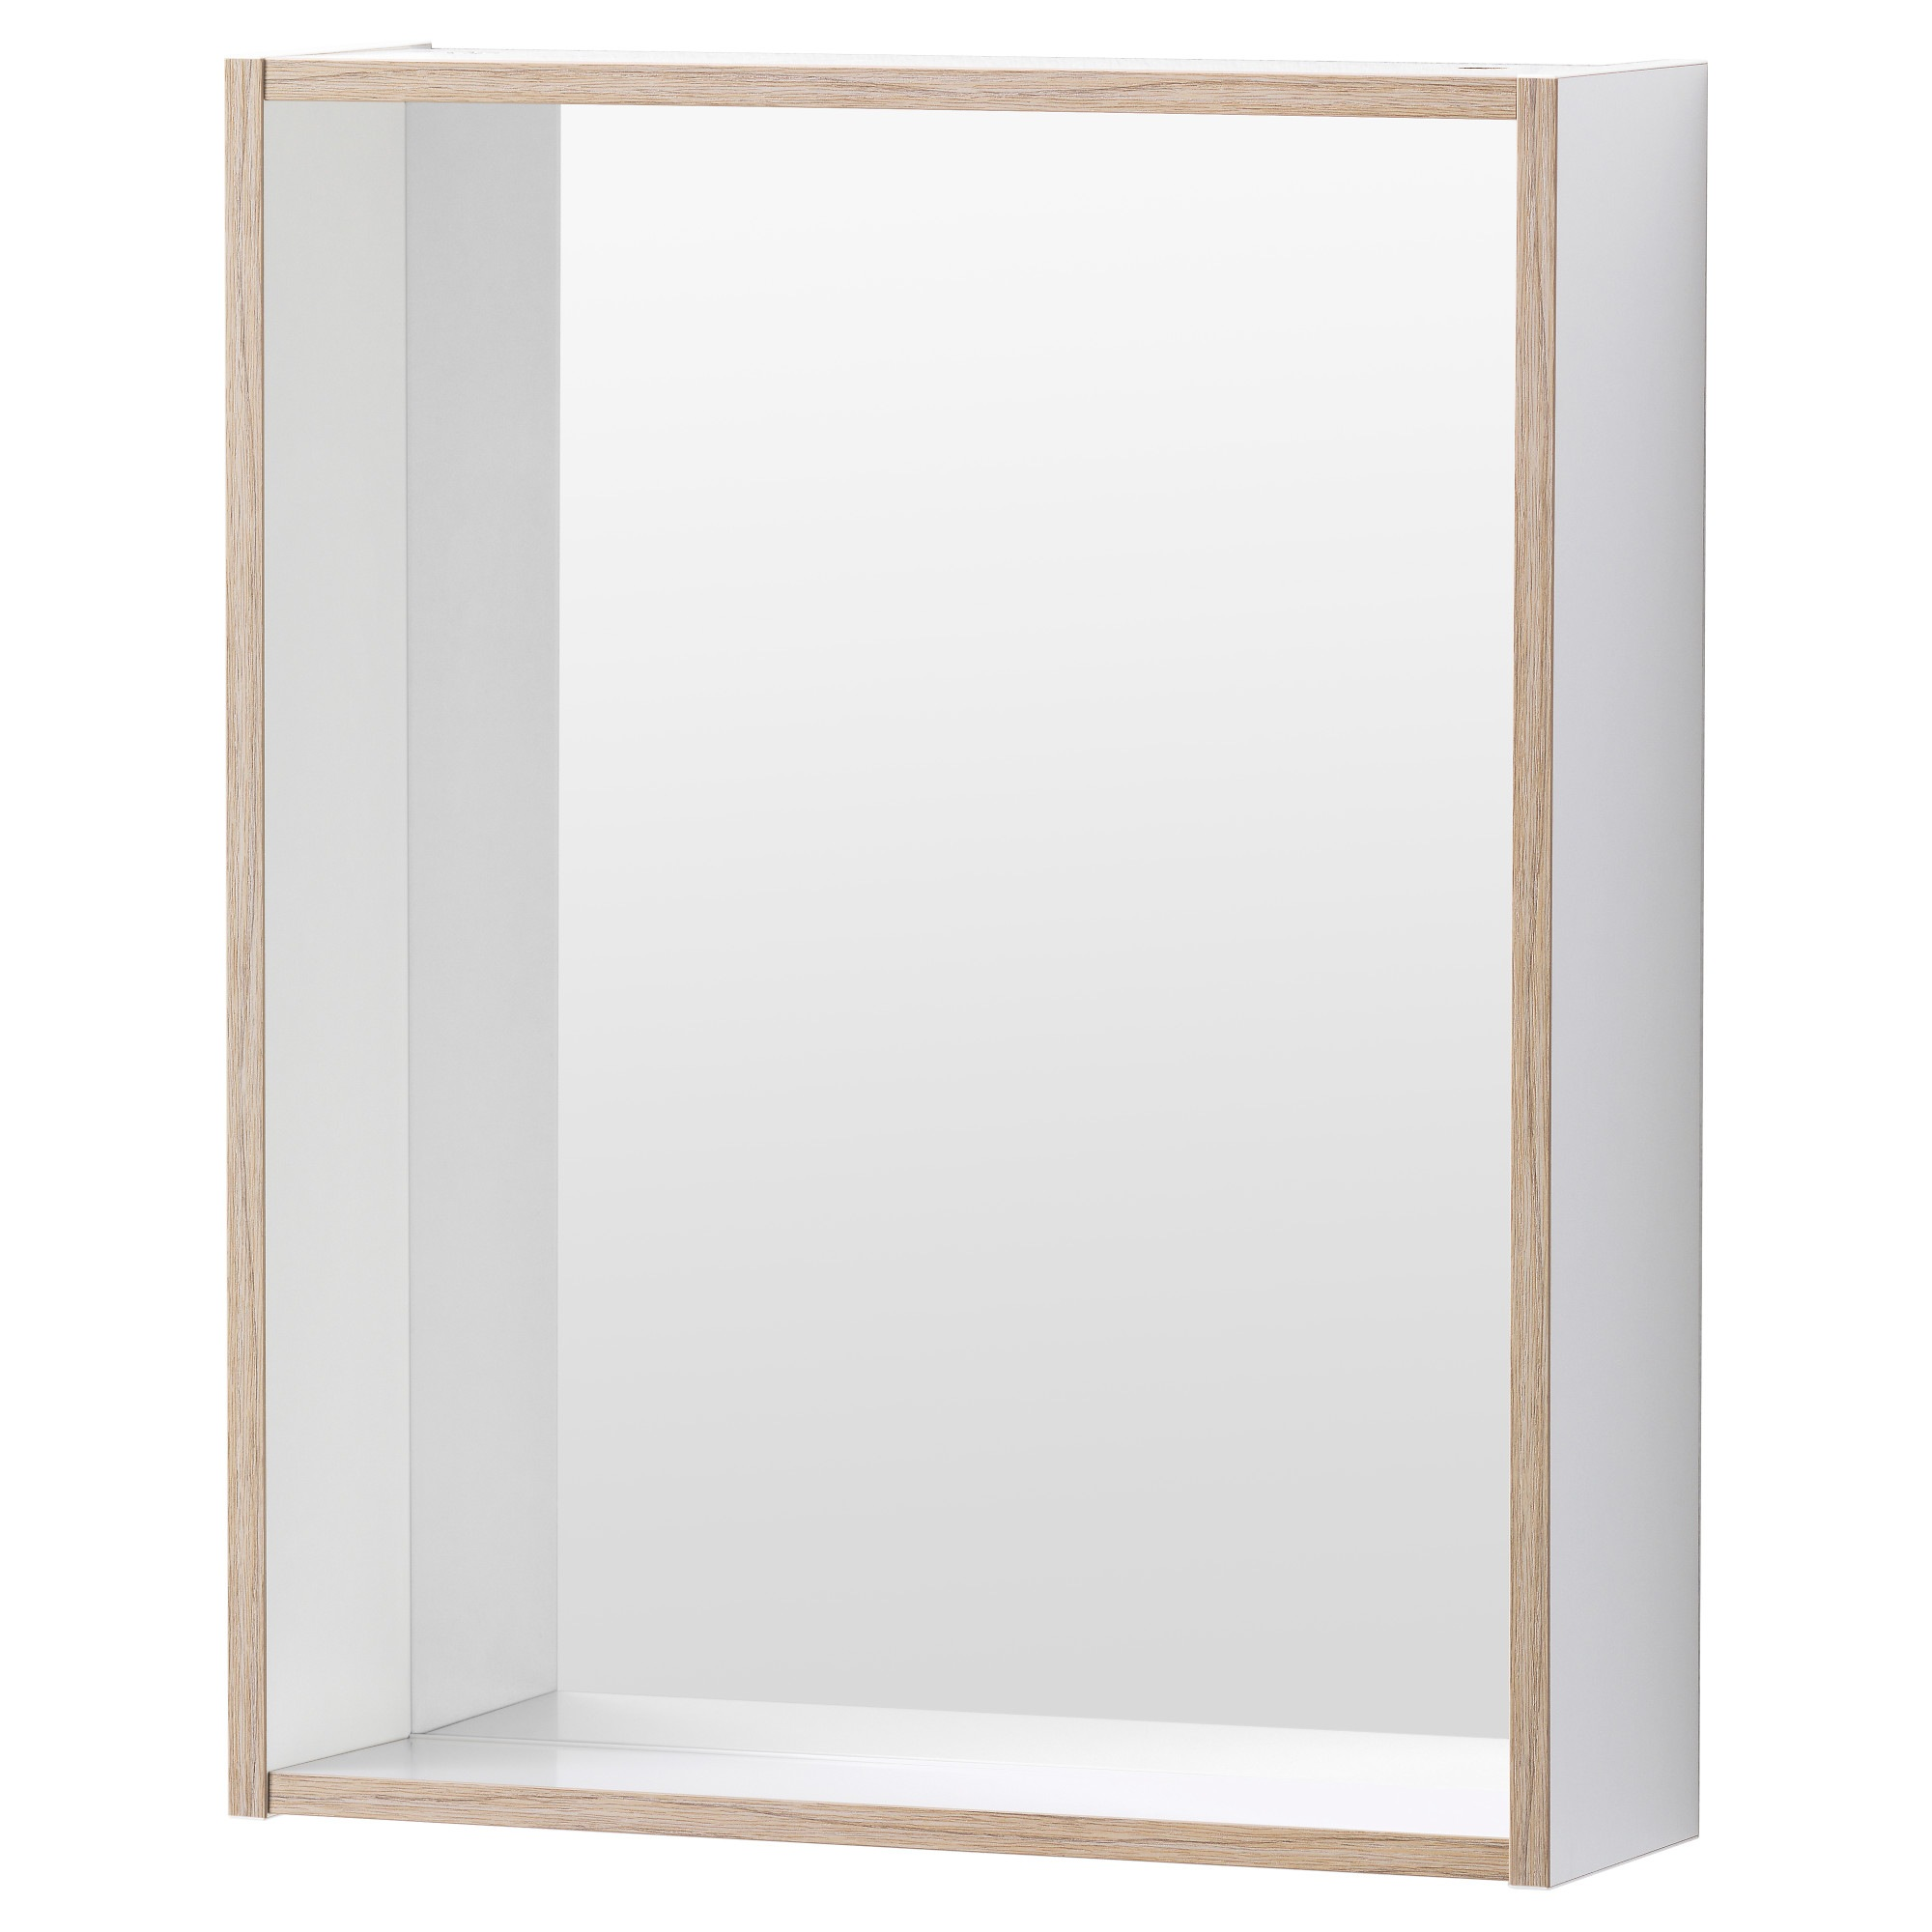 Bathroom Mirrors With Shelf bathroom mirrors - ikea